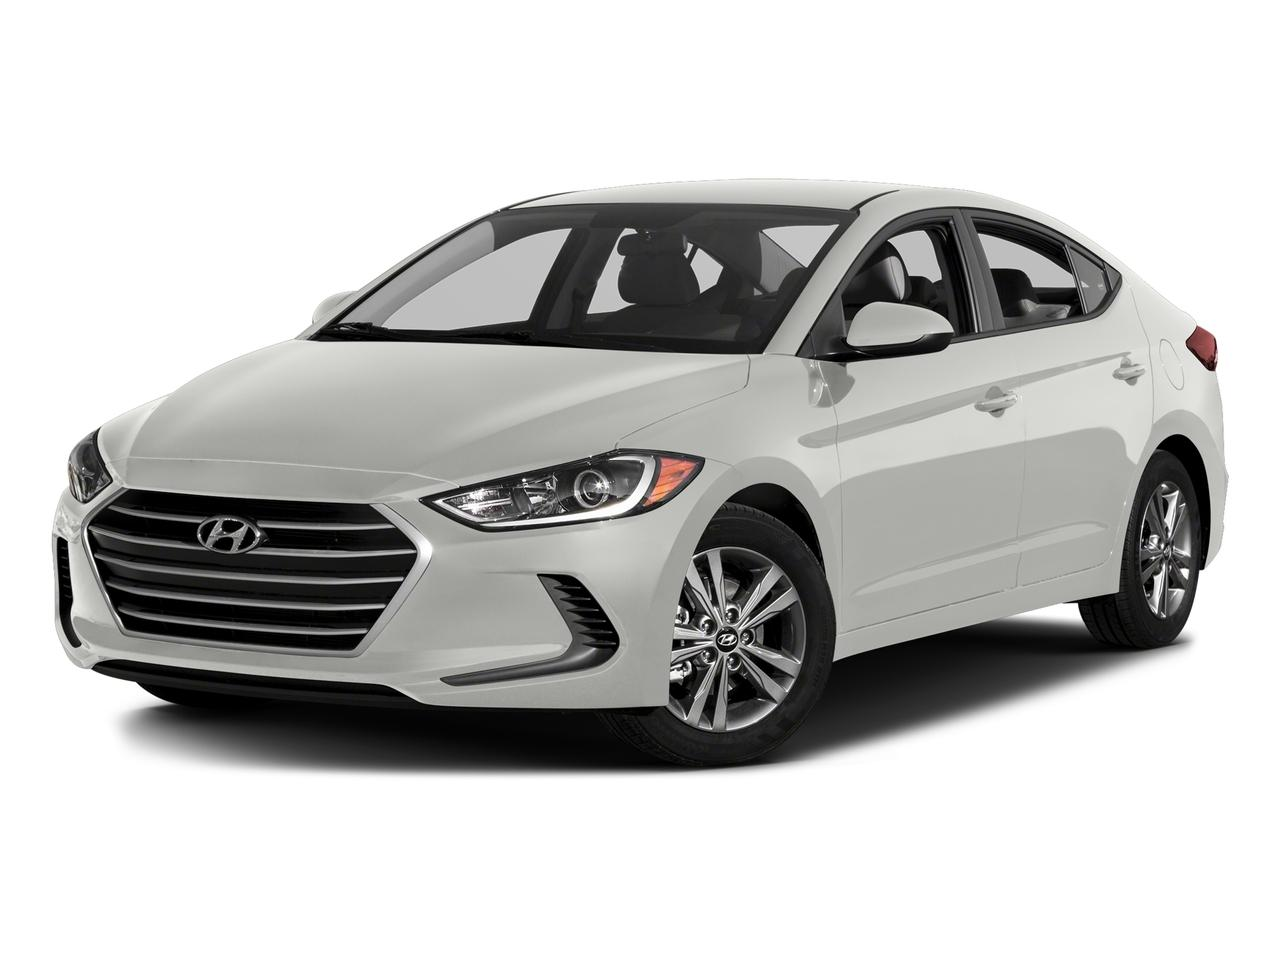 2018 Hyundai Elantra Vehicle Photo in Spokane, WA 99207